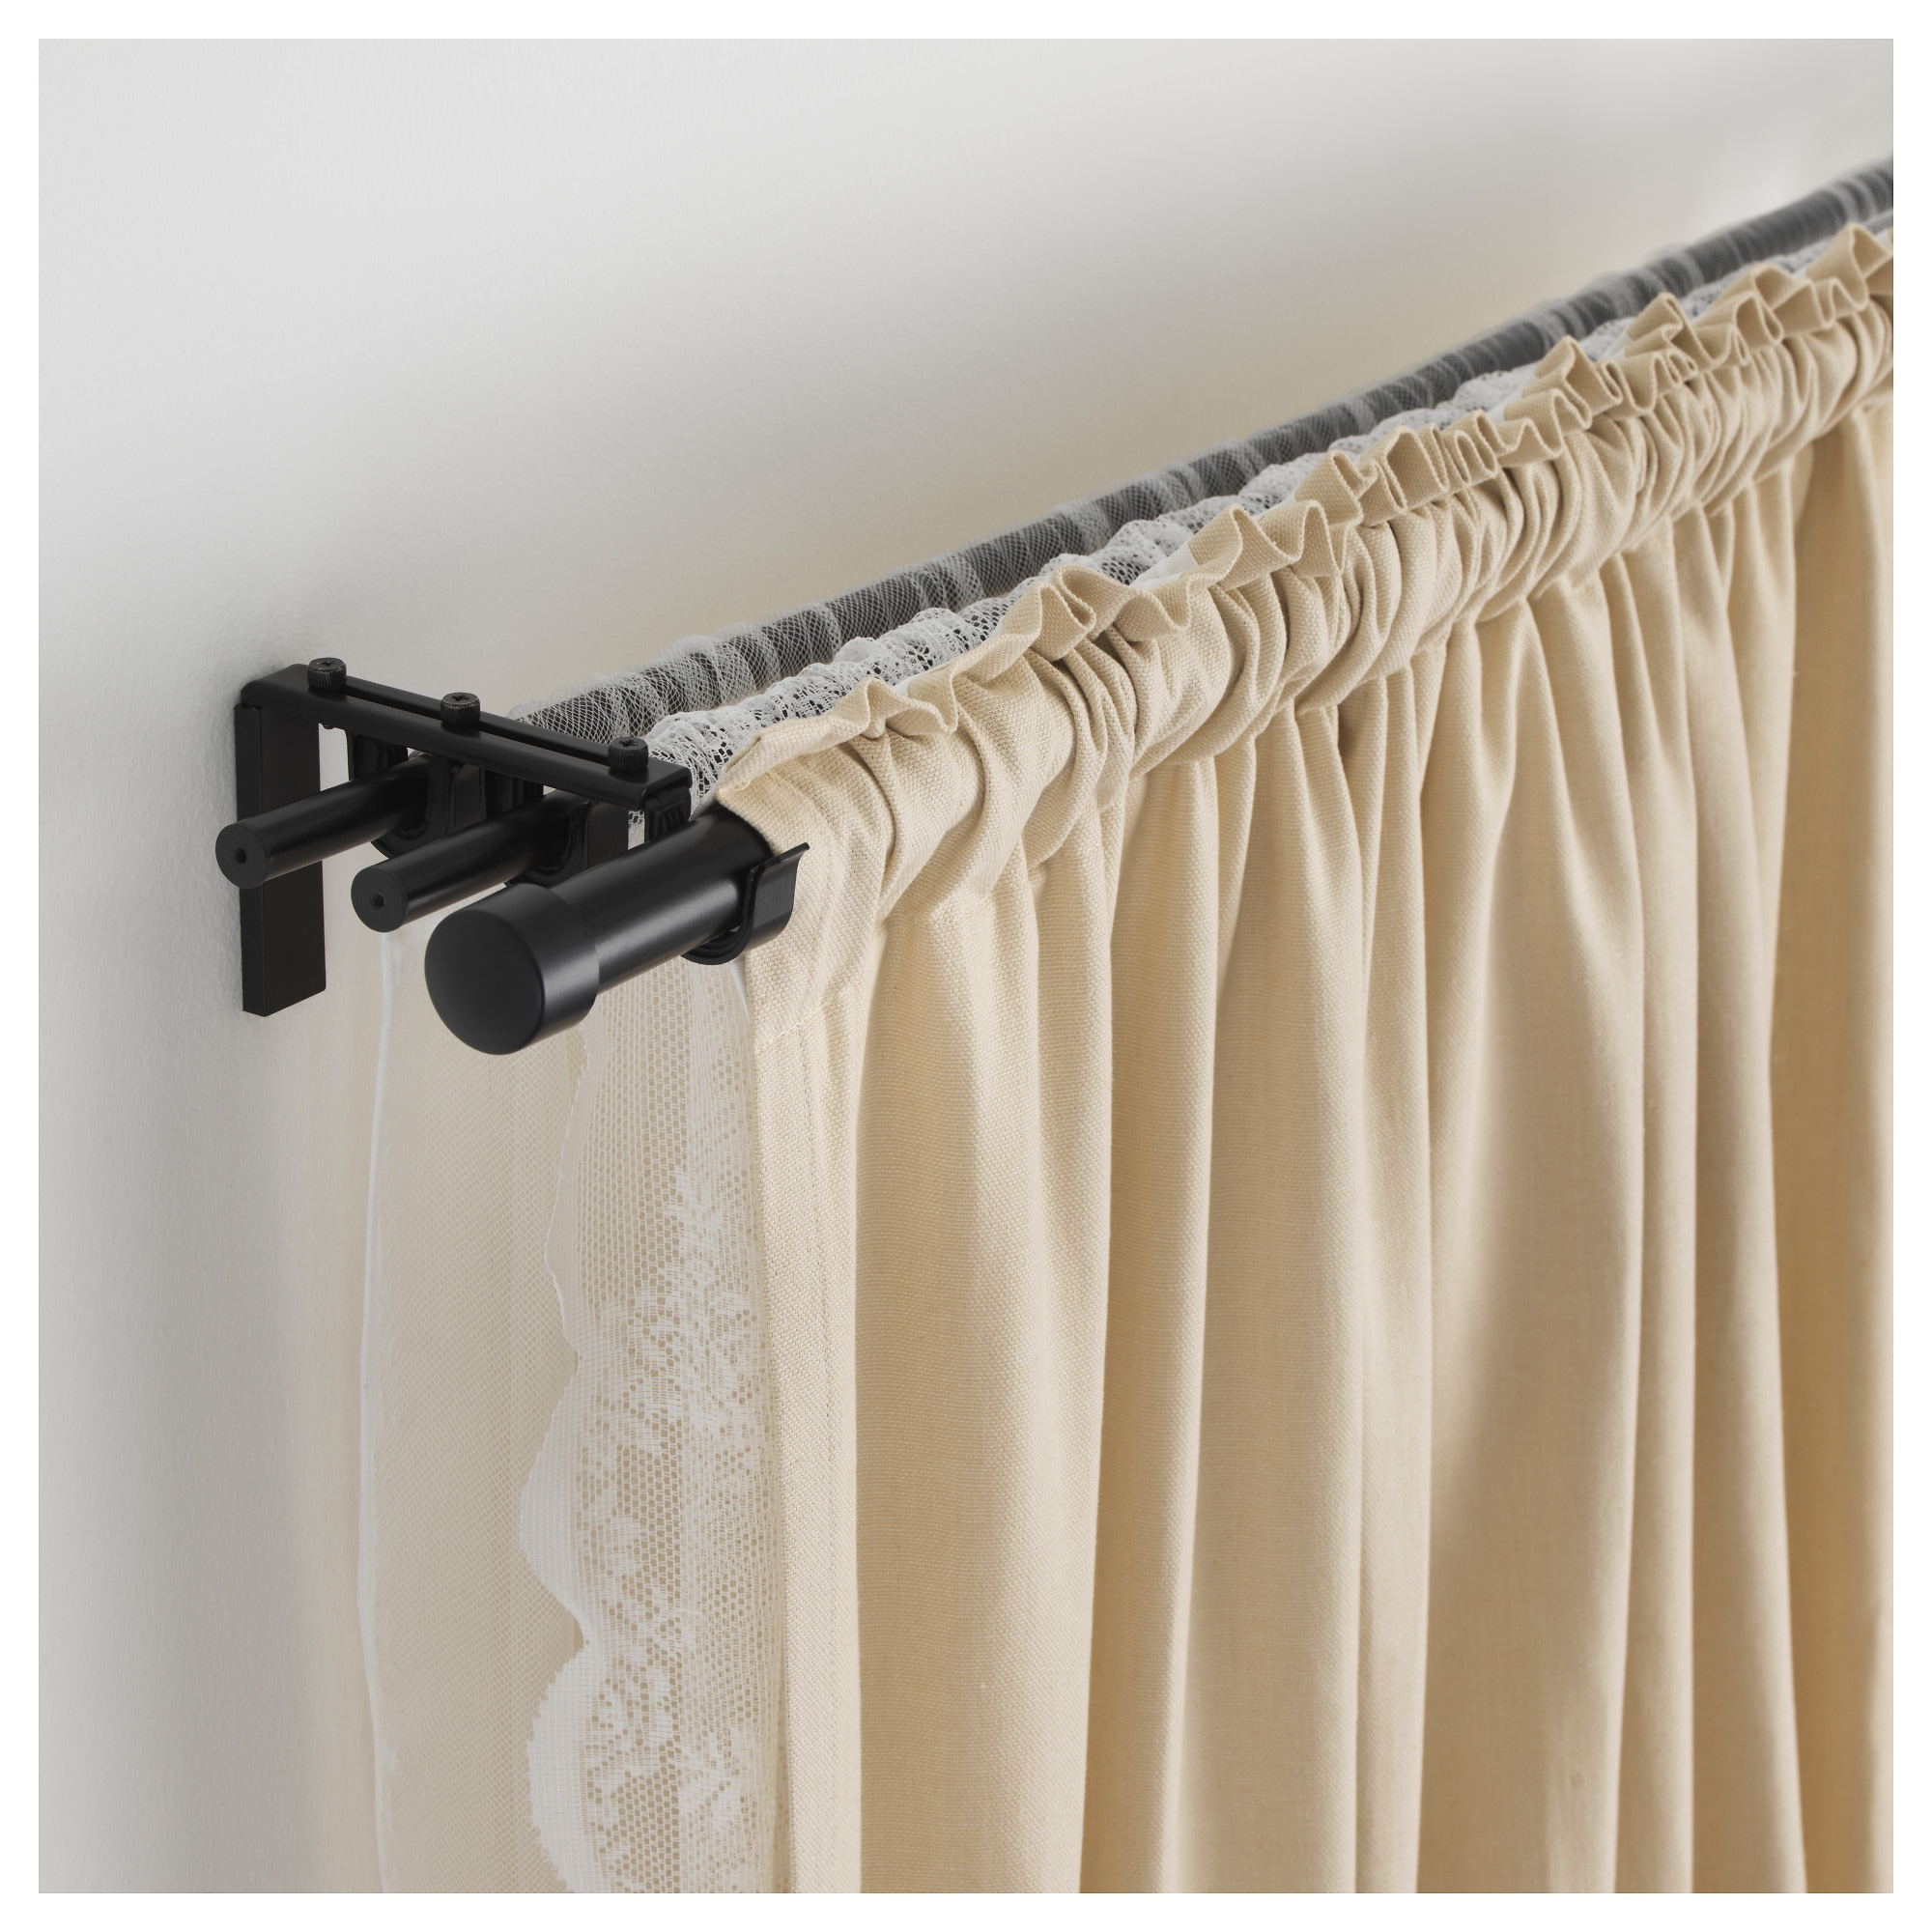 cafe love inch adjustable full decorative rails fascinating that door white you curtain design size mount round inside rod long ends french rods pole best curtains will of foot